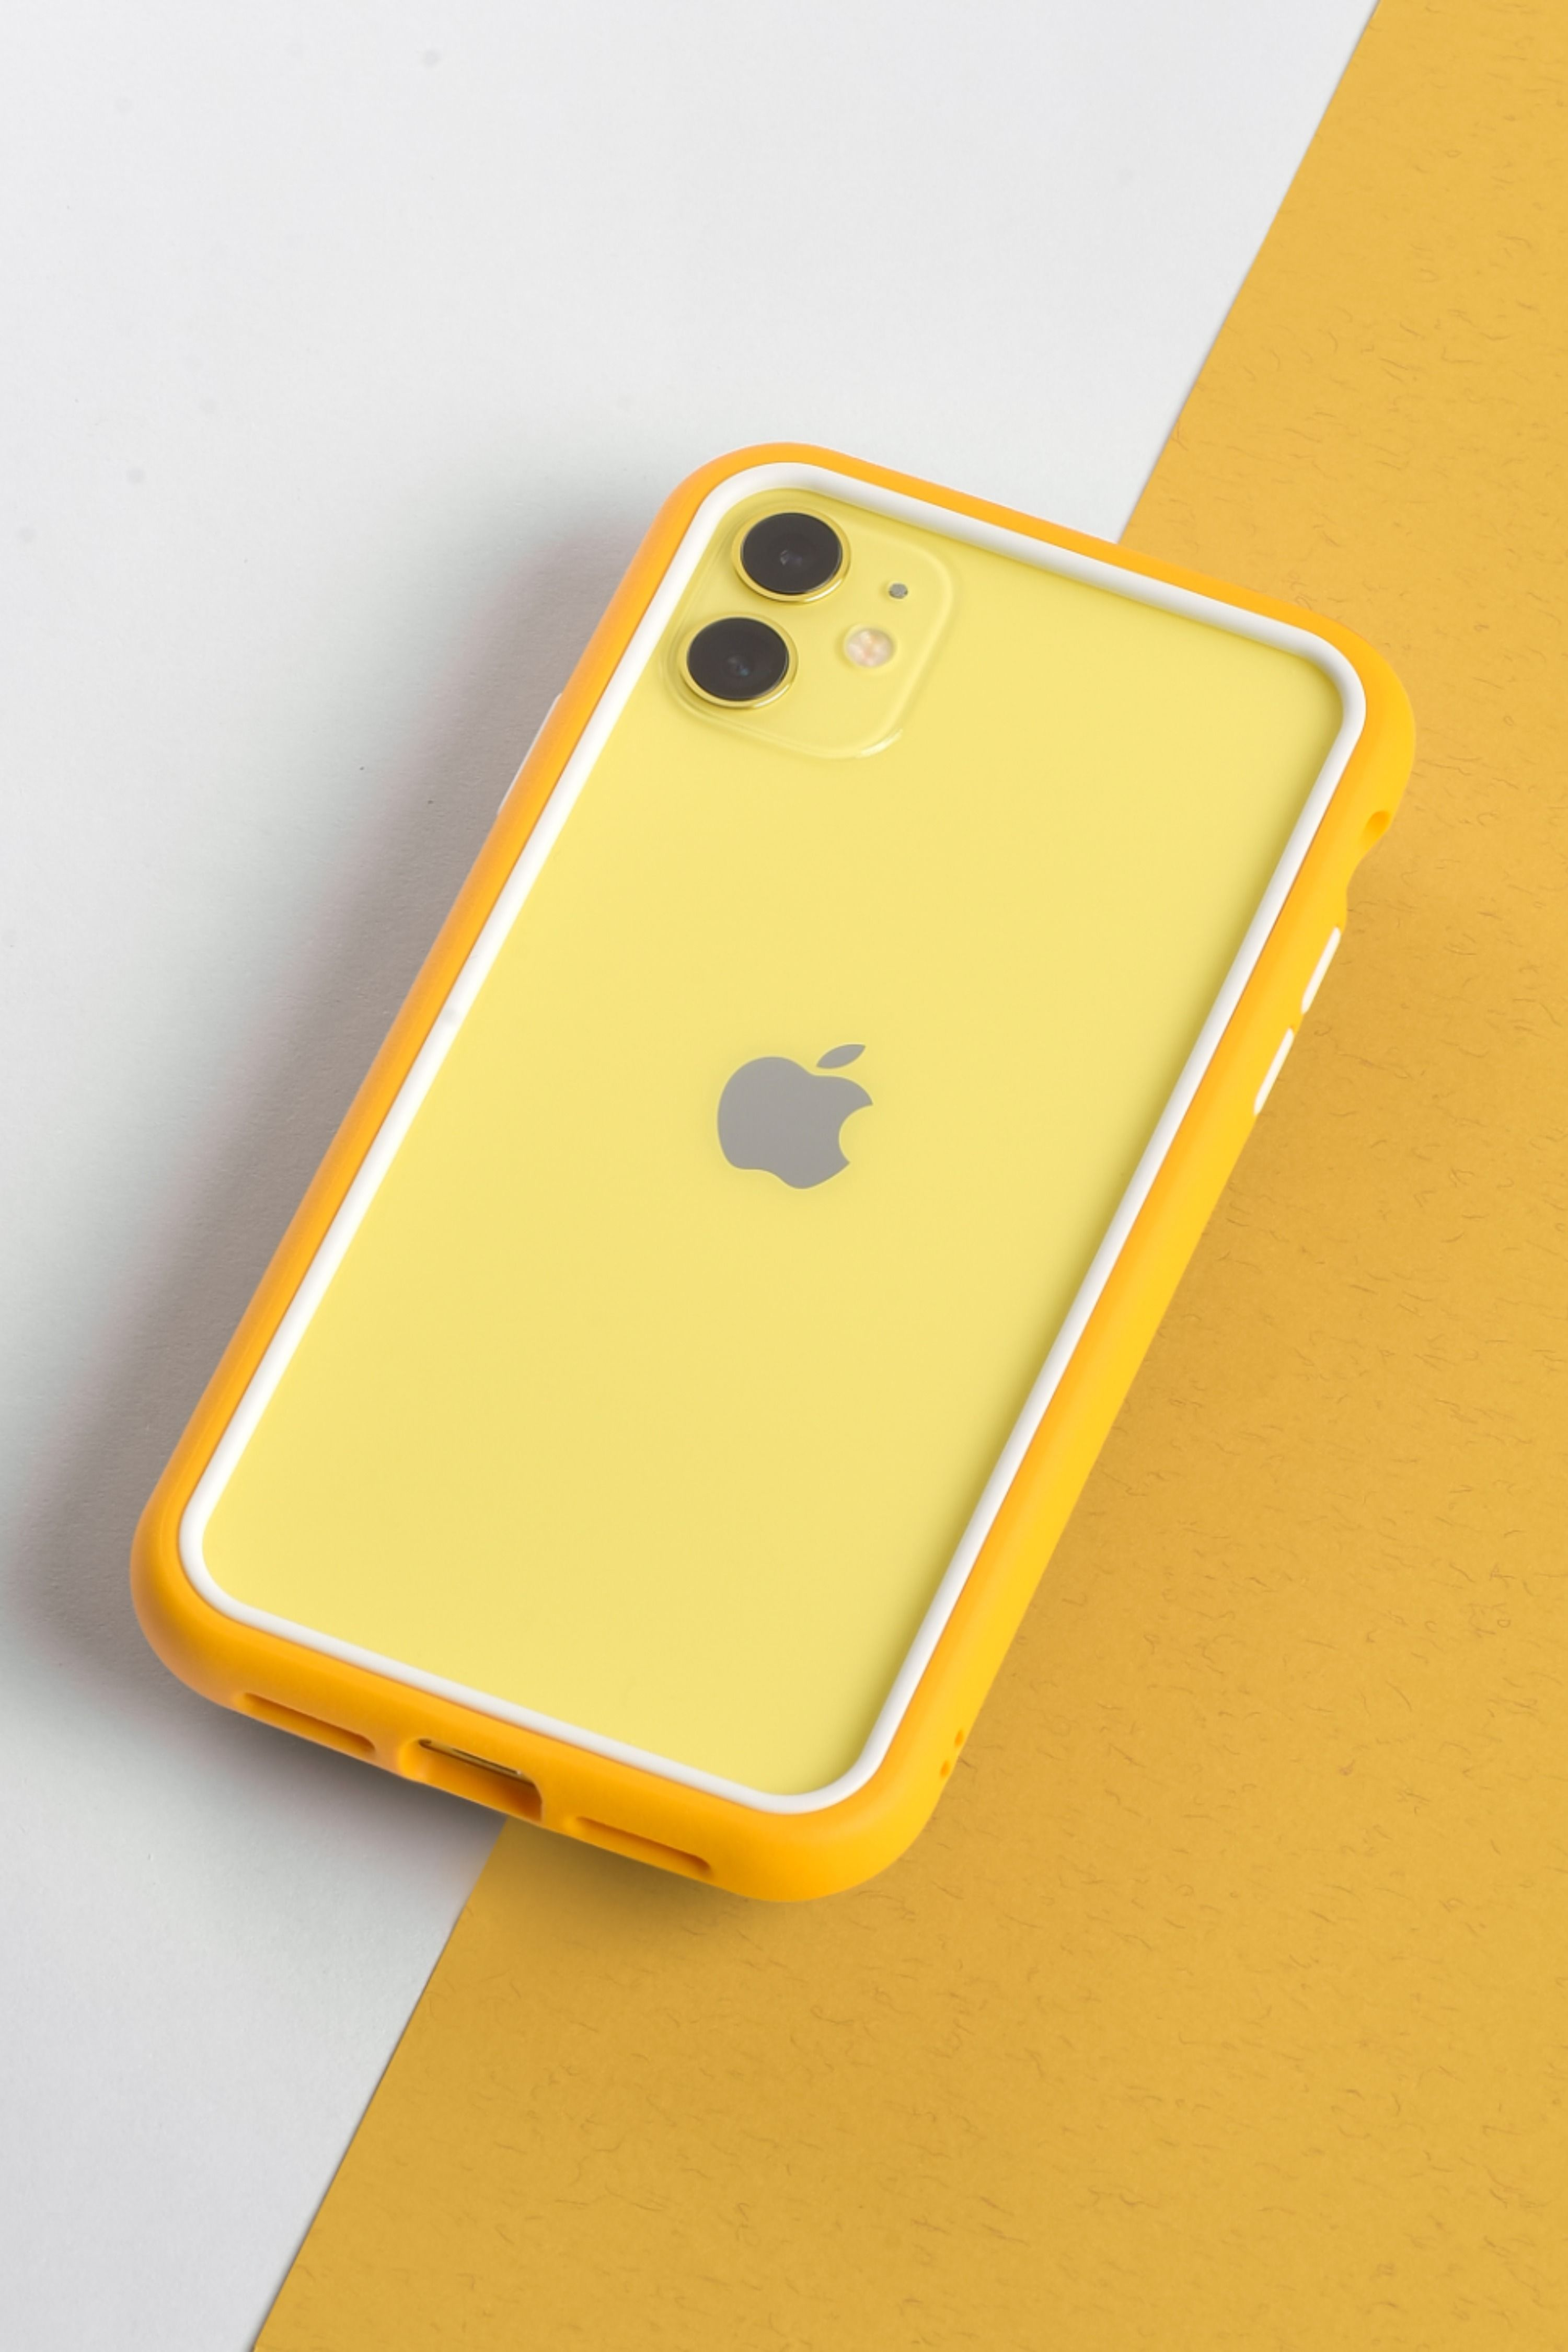 CrashGuard NX Customizable iPhone Cases. Use code PIN10